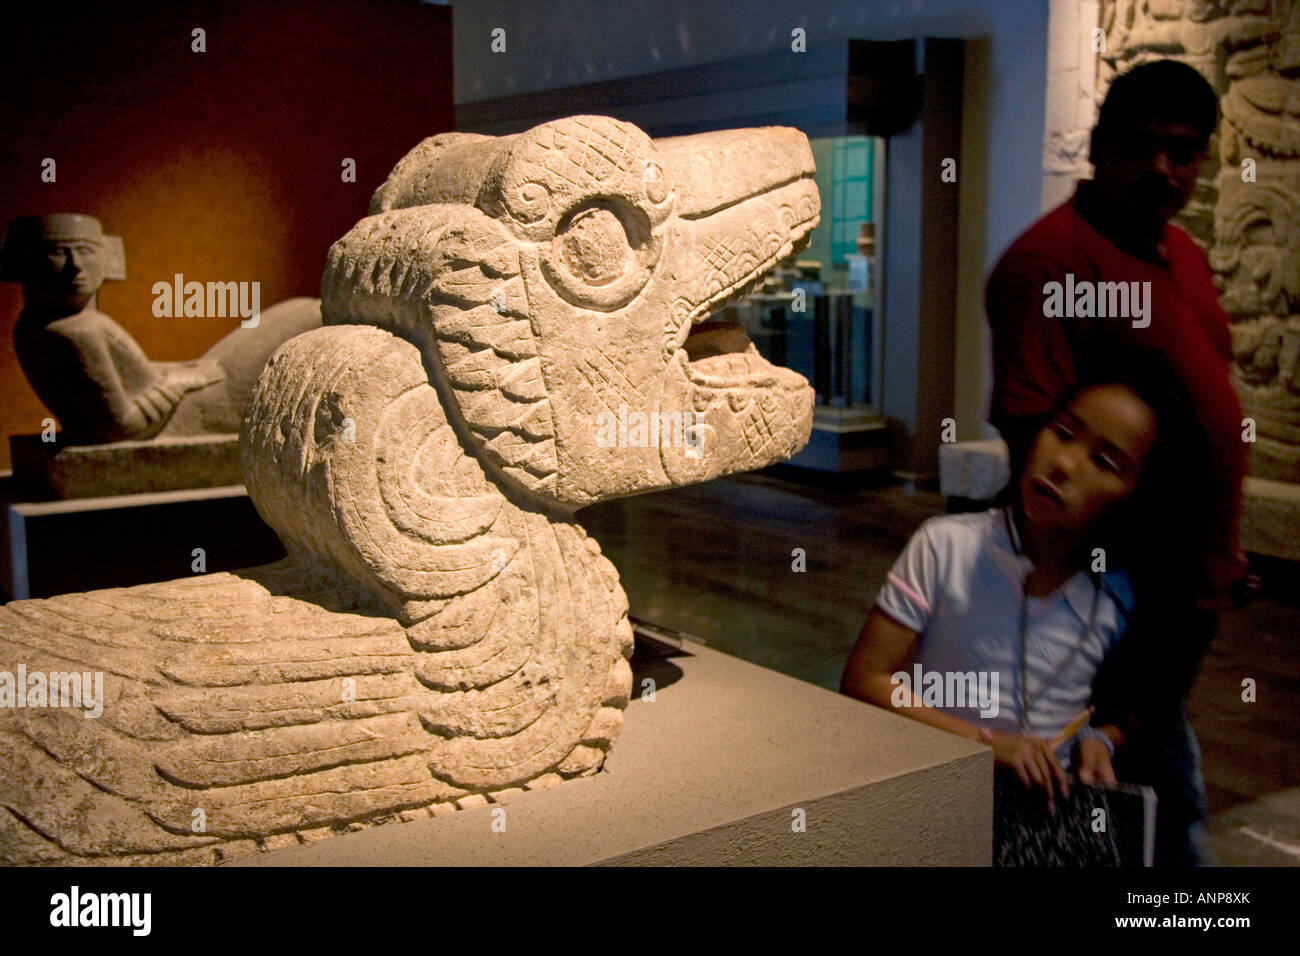 Serpant artifact on display at the National Museum of Anthropology in Mexico City Mexico Stock Photo